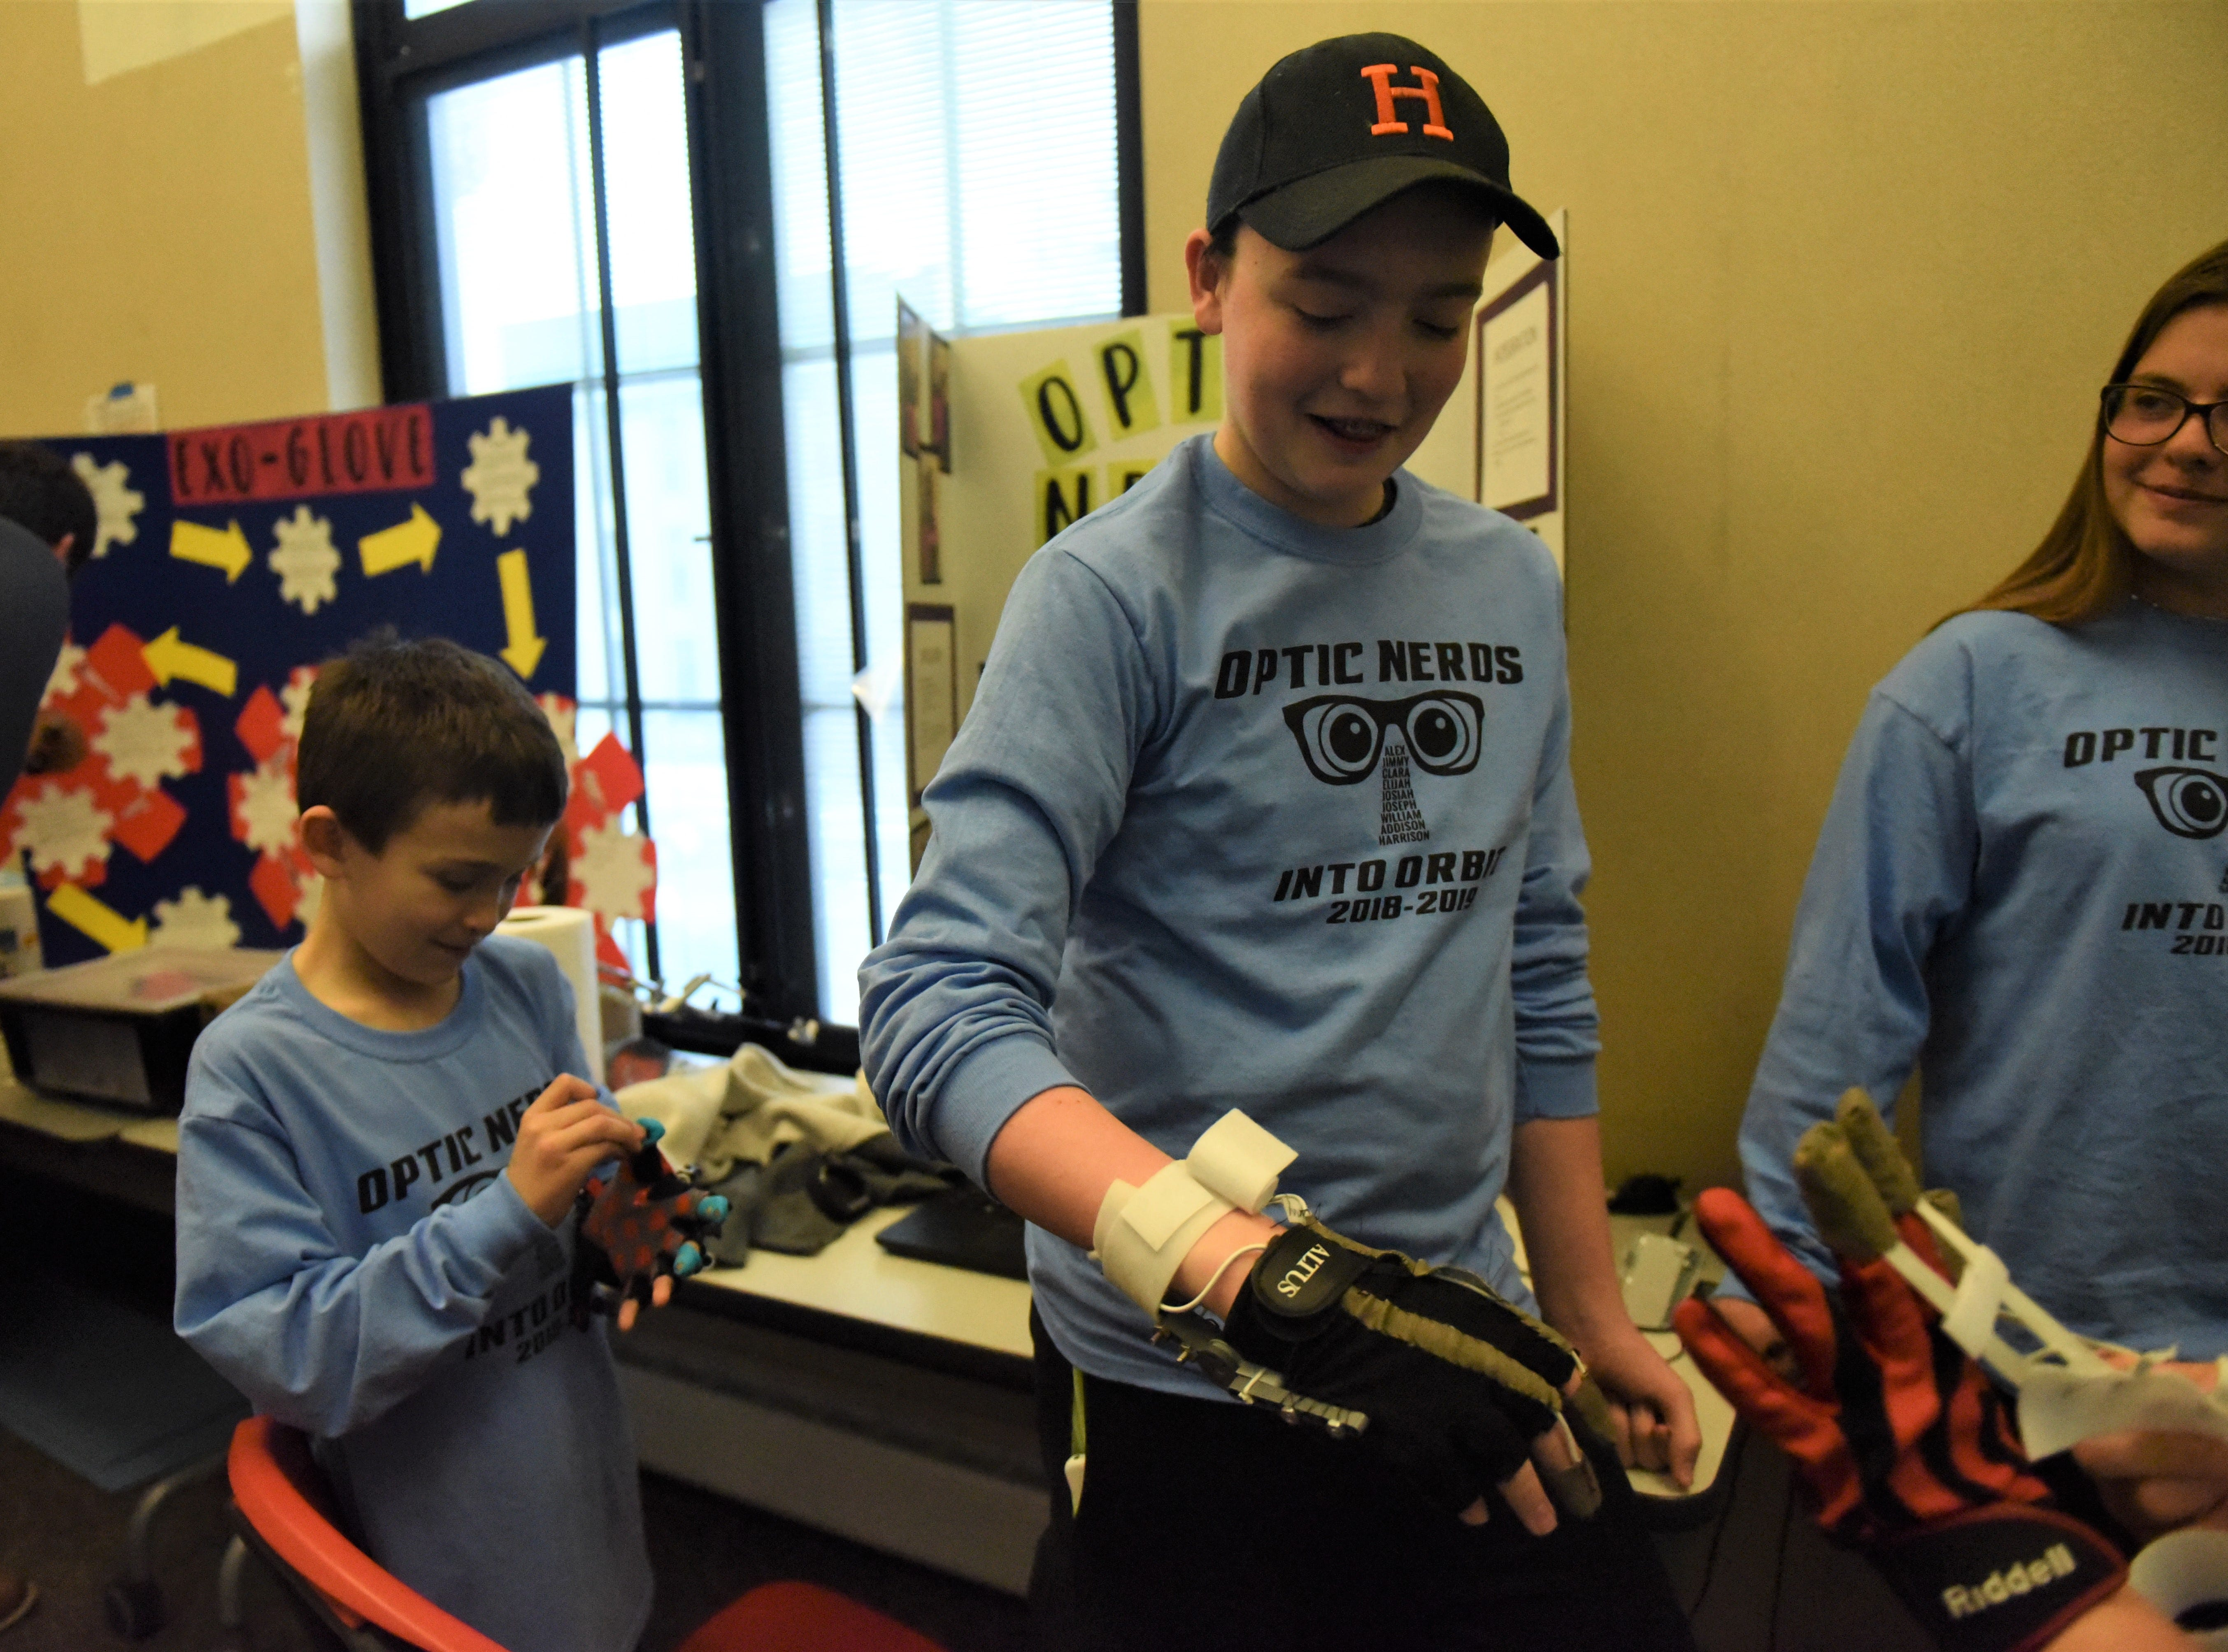 From left, Harrison Roth, 9, Josiah Brower, 13 and Clara Morton, 15, test the exo-skeleton glove Clara and Josiah designed that would help astronauts' motor function in outer space. The two got the idea for this invention after they went on a field trip to George Washington University where they got to interview Dr. Serena Auñon-Chancellor, a woman currently living in space.